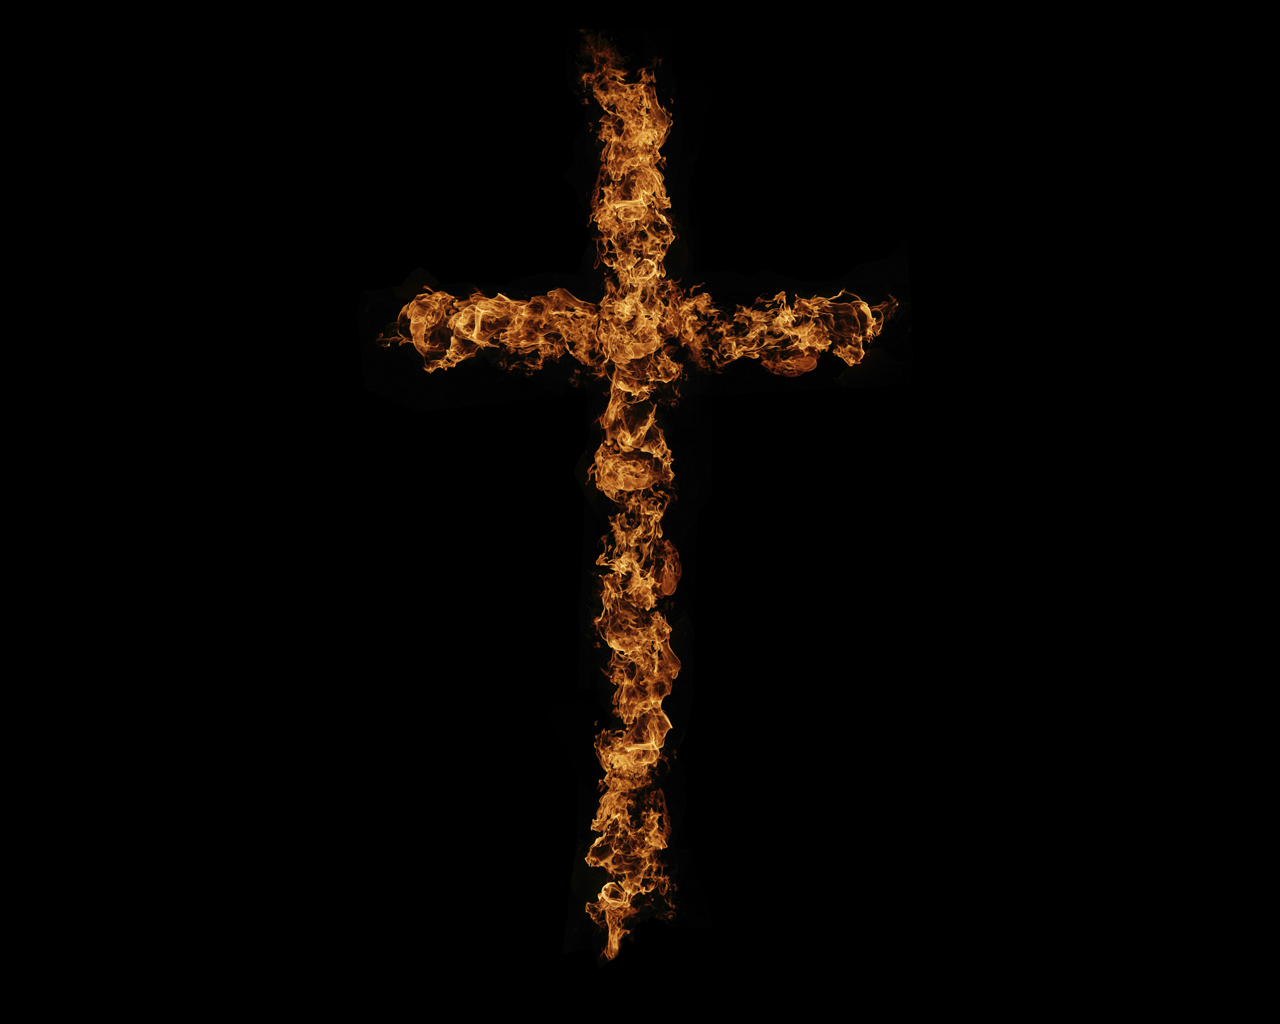 8 Christian Cross Wallpapers for Free Download | Cool Christian Wallpapers